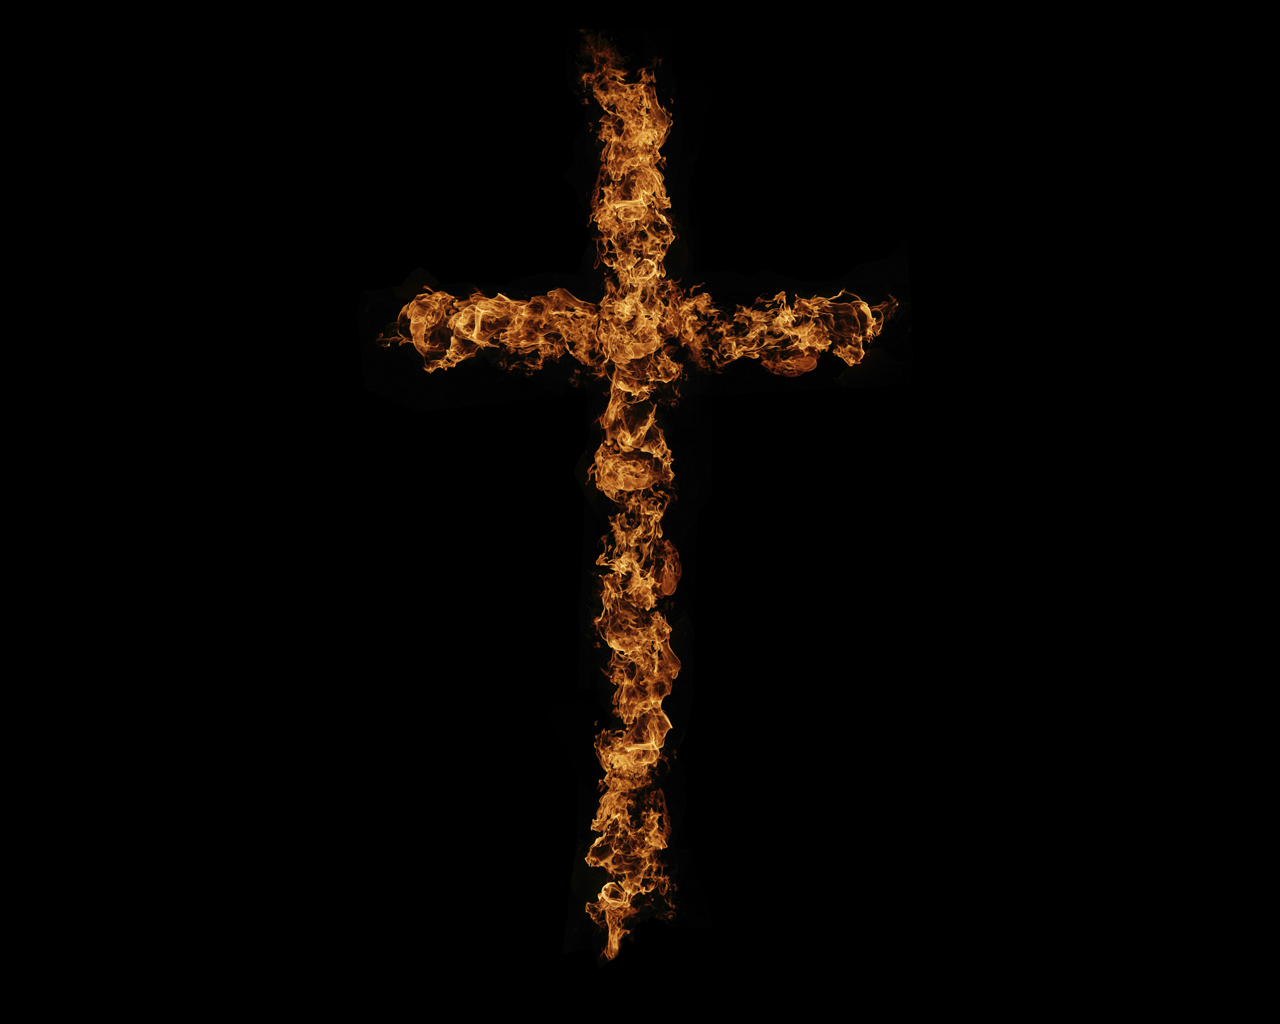 8 Christian Cross Wallpapers for Free Download | Cool Christian Wallpapers